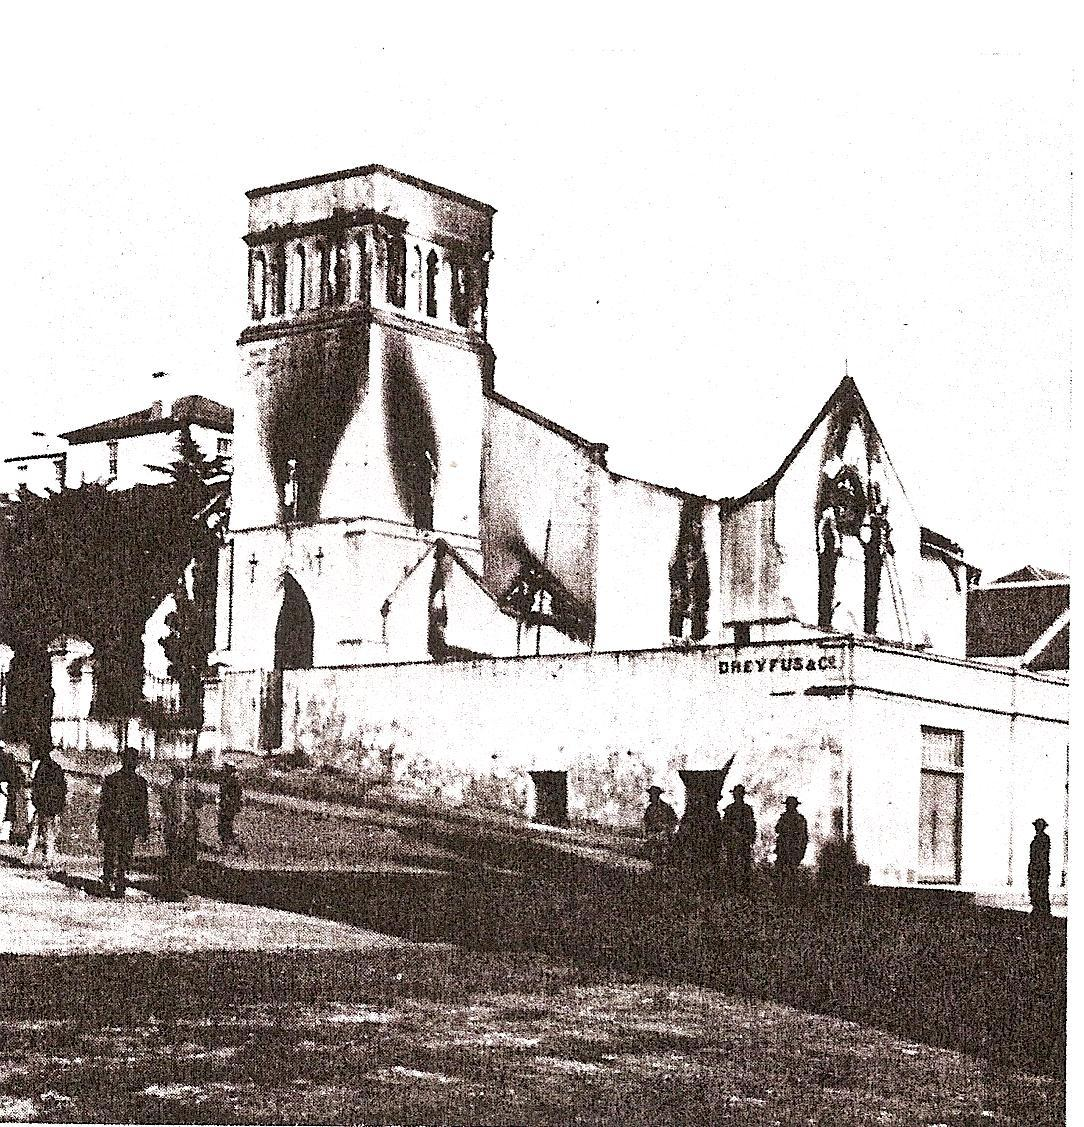 After the fire at St Mary's fire in 1895